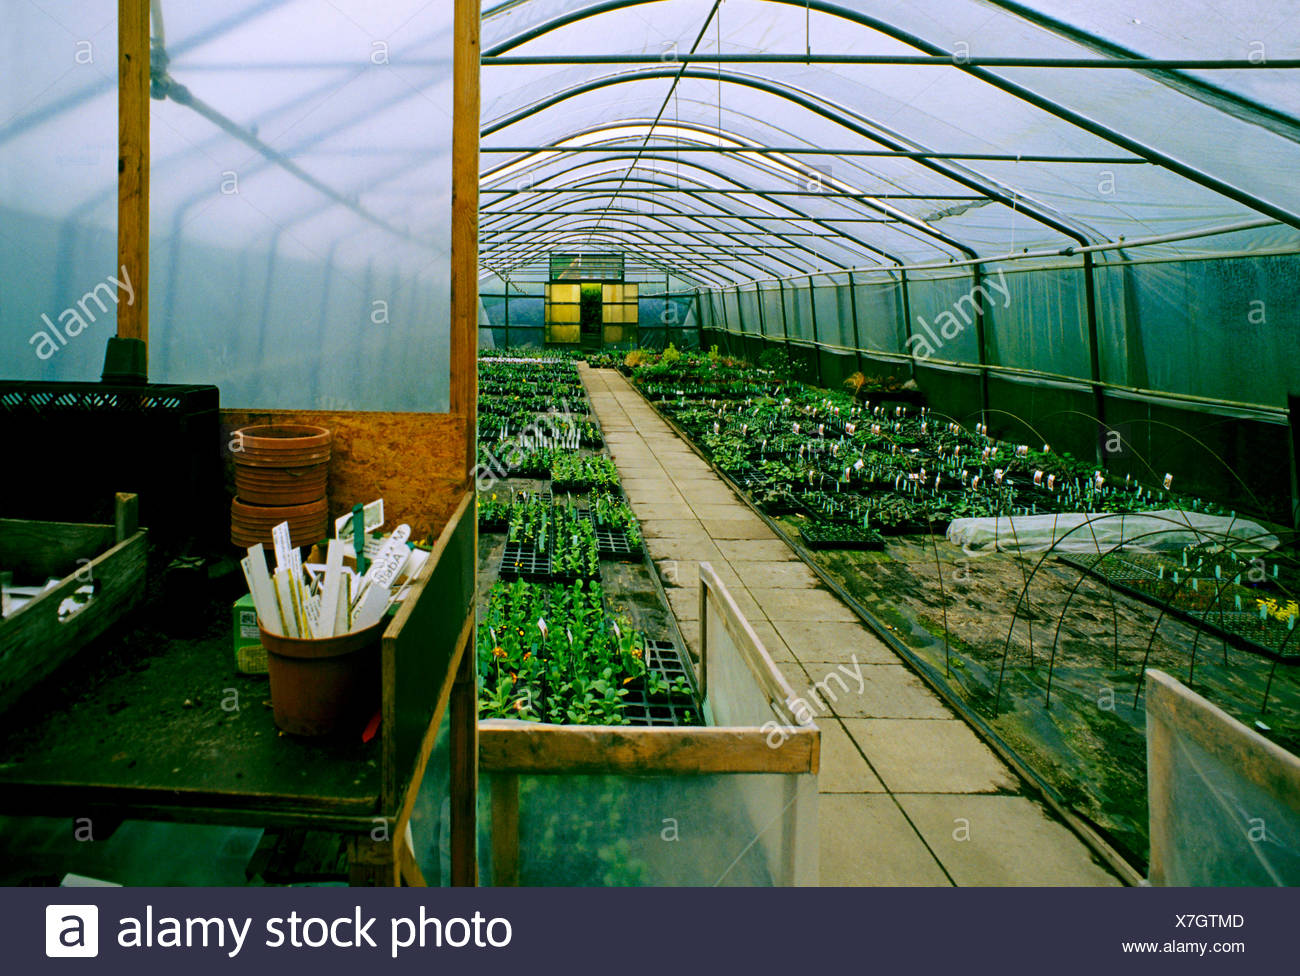 greenhouse of a market garden in North Germany, Germany - Stock Image